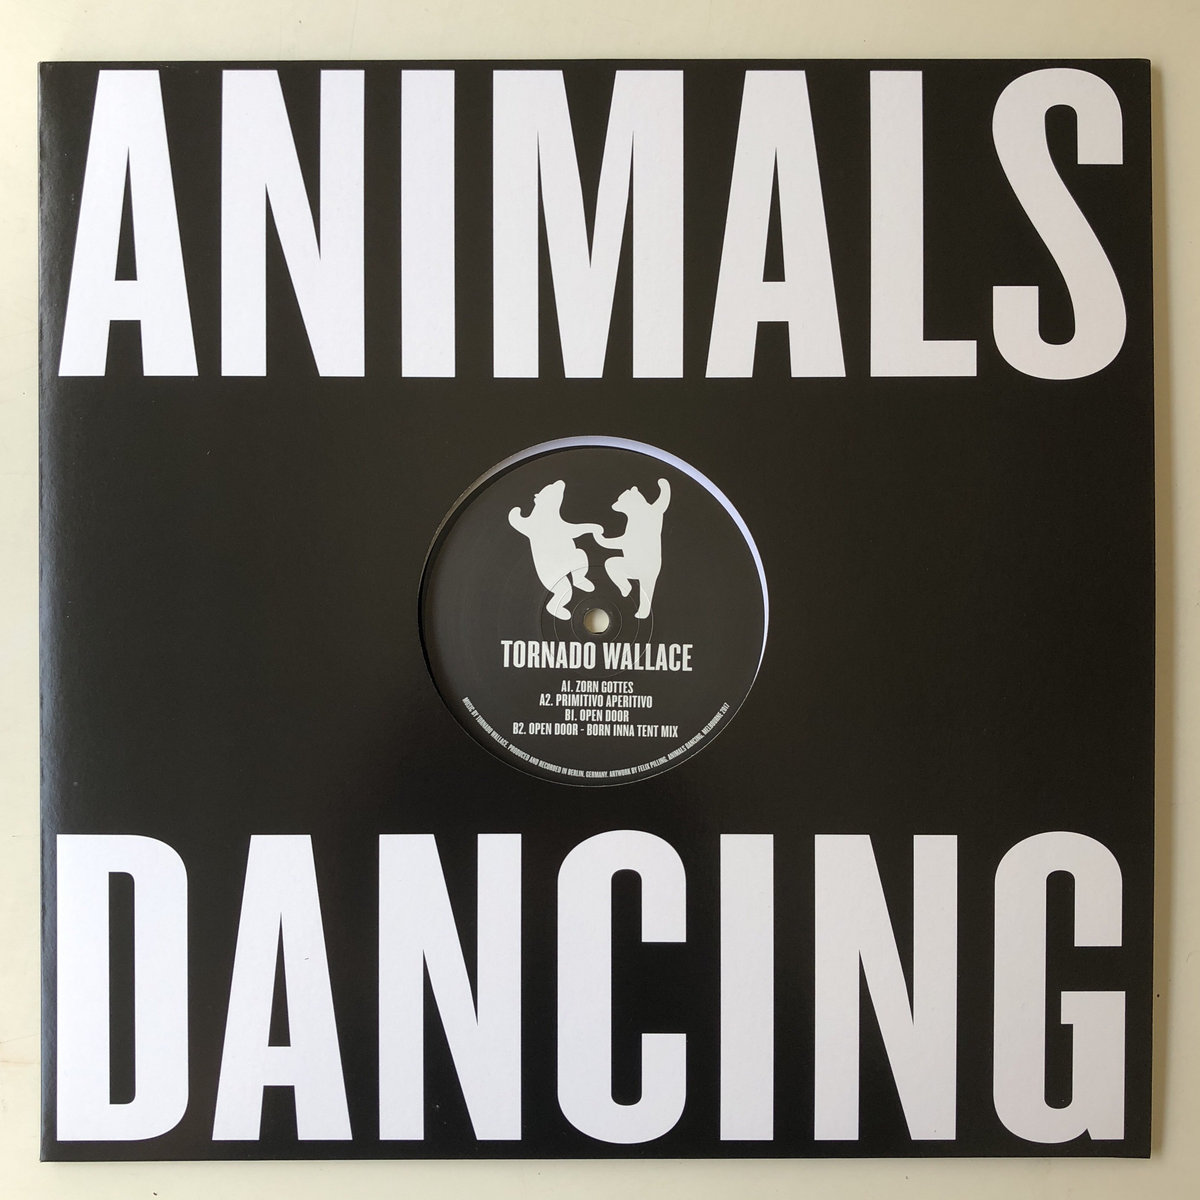 EP for Animals Dancing | Animals Dancing